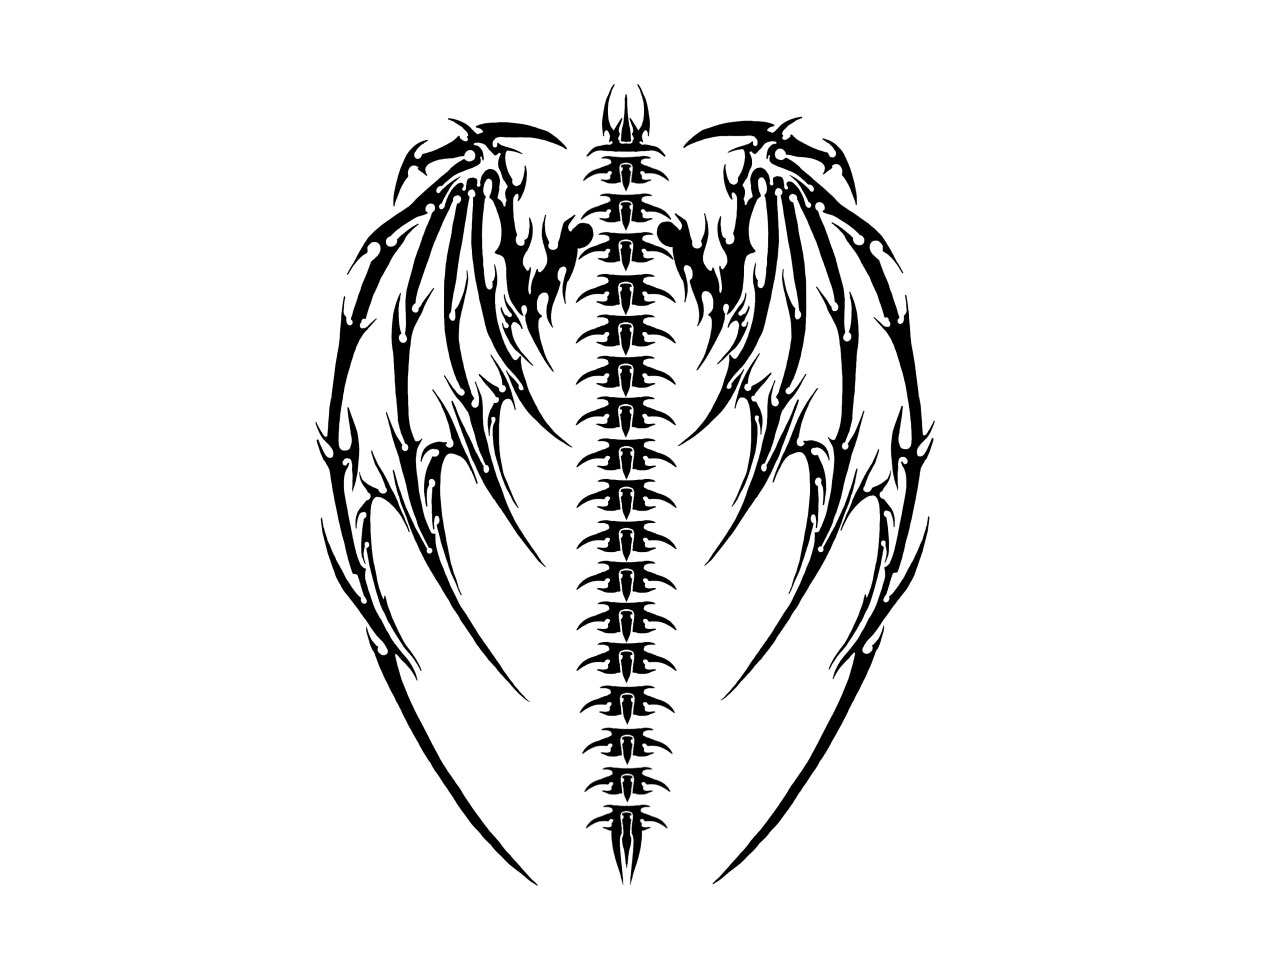 Gothic Heart Tattoos Simple tribal gothic tattoo